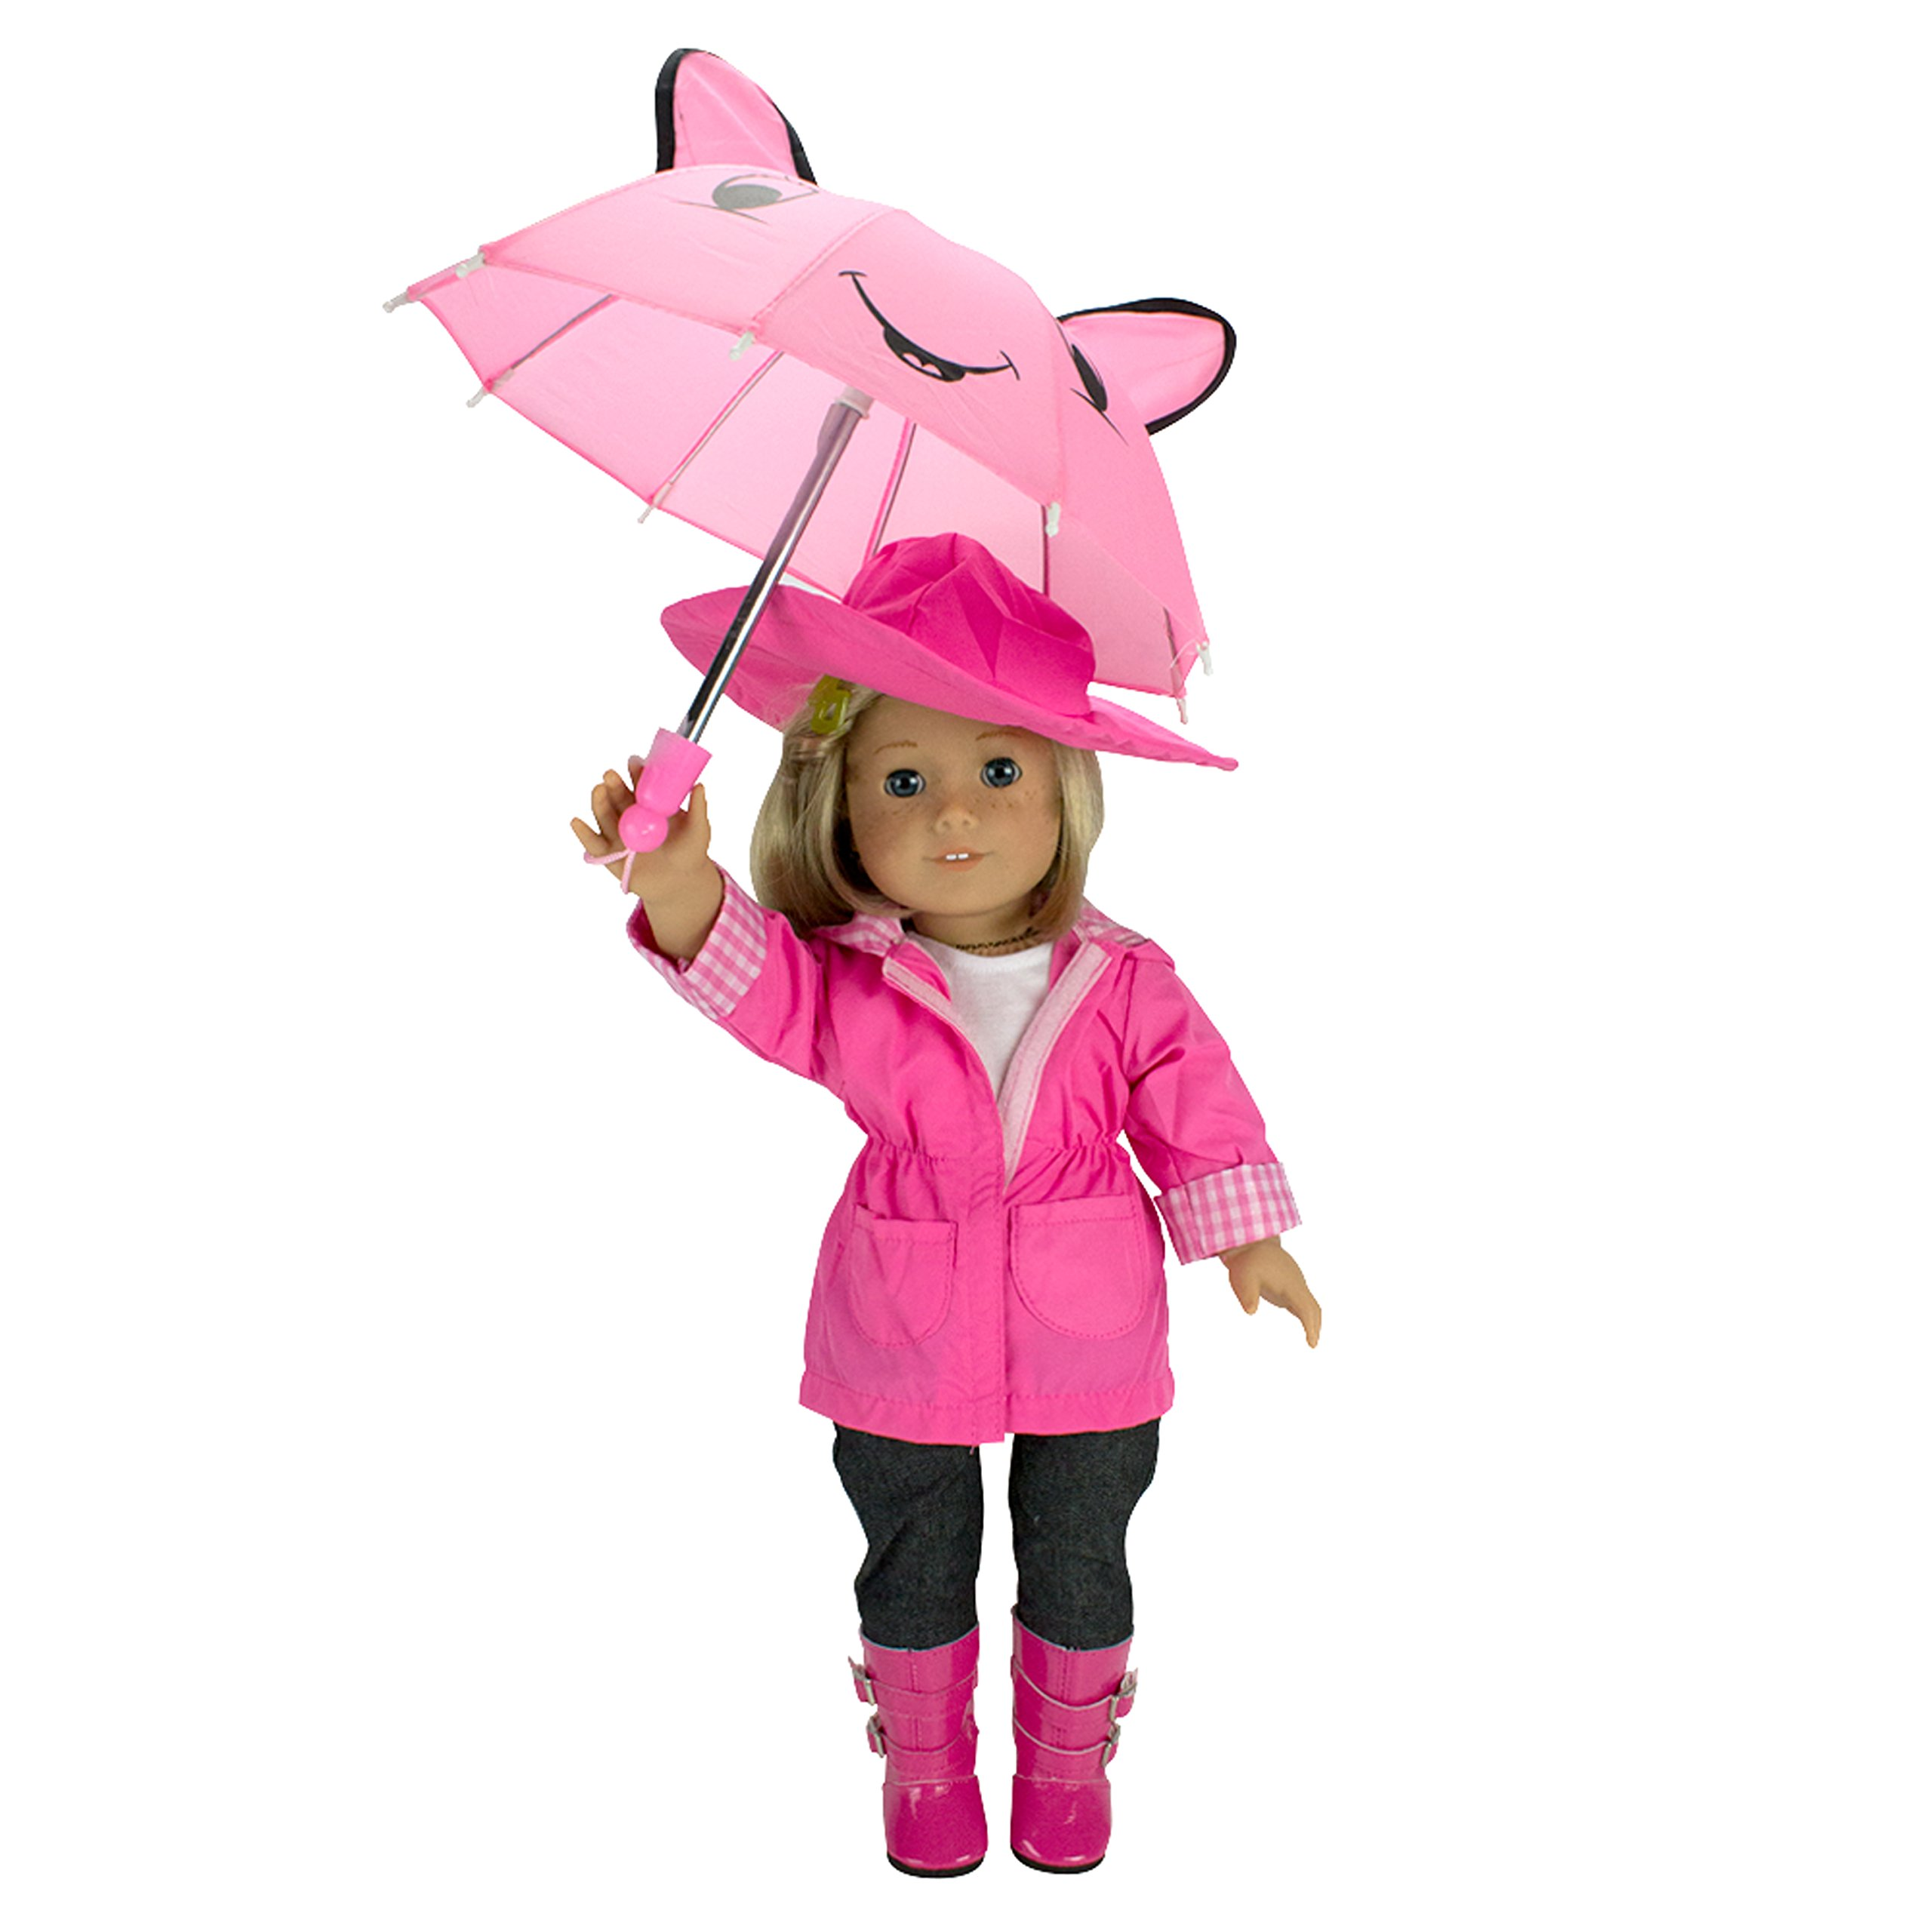 Dress Along Dolly Rainy Day Outfit Set For American Girl and 18'' Dolls (6 Piece Set)- Includes Raincoat, Umbrella, Boots, Hat, and Shirt